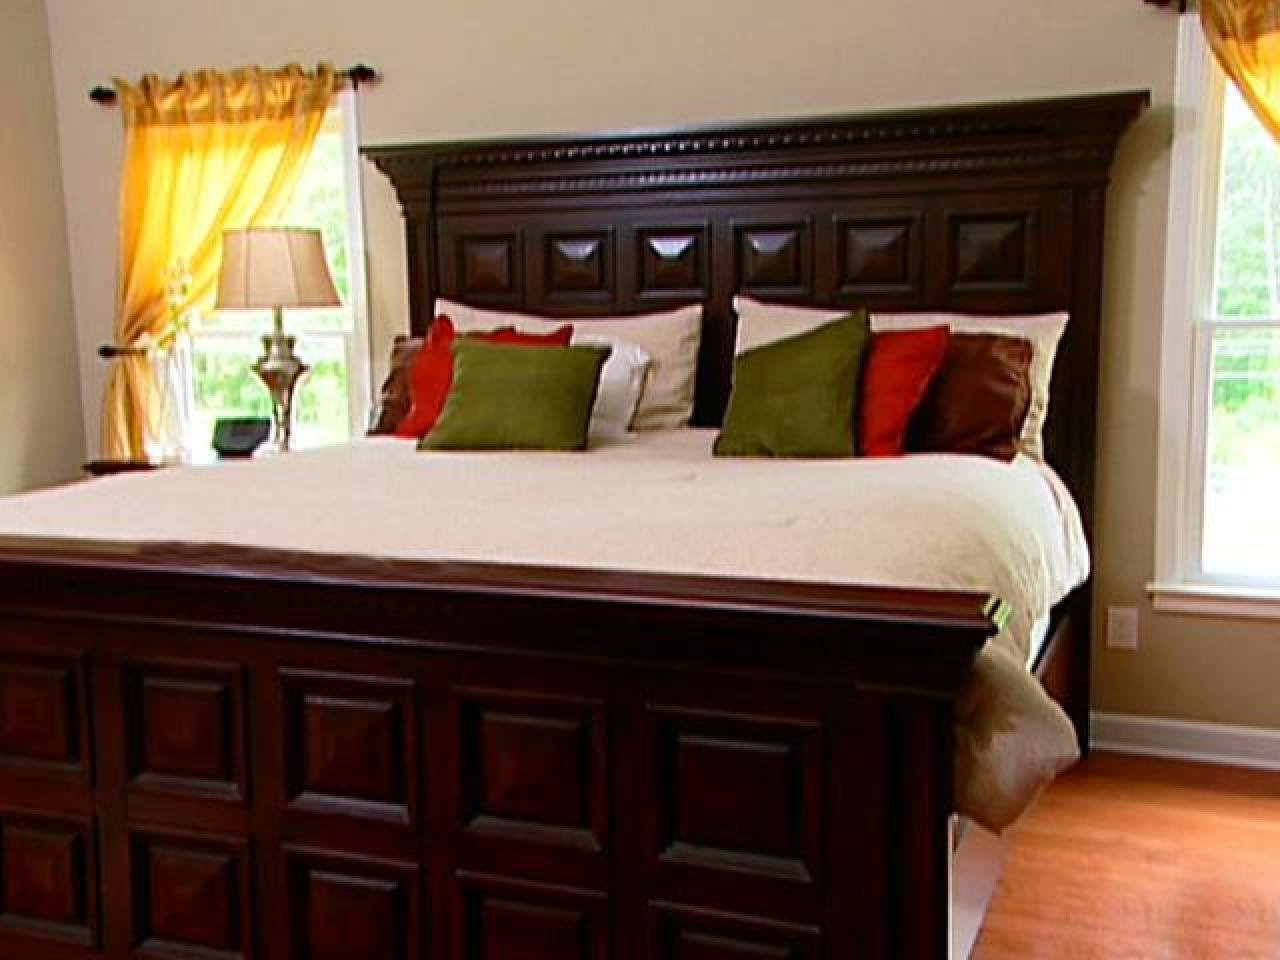 Best Quick Tips For Organizing Bedrooms Easy Ideas For With Pictures